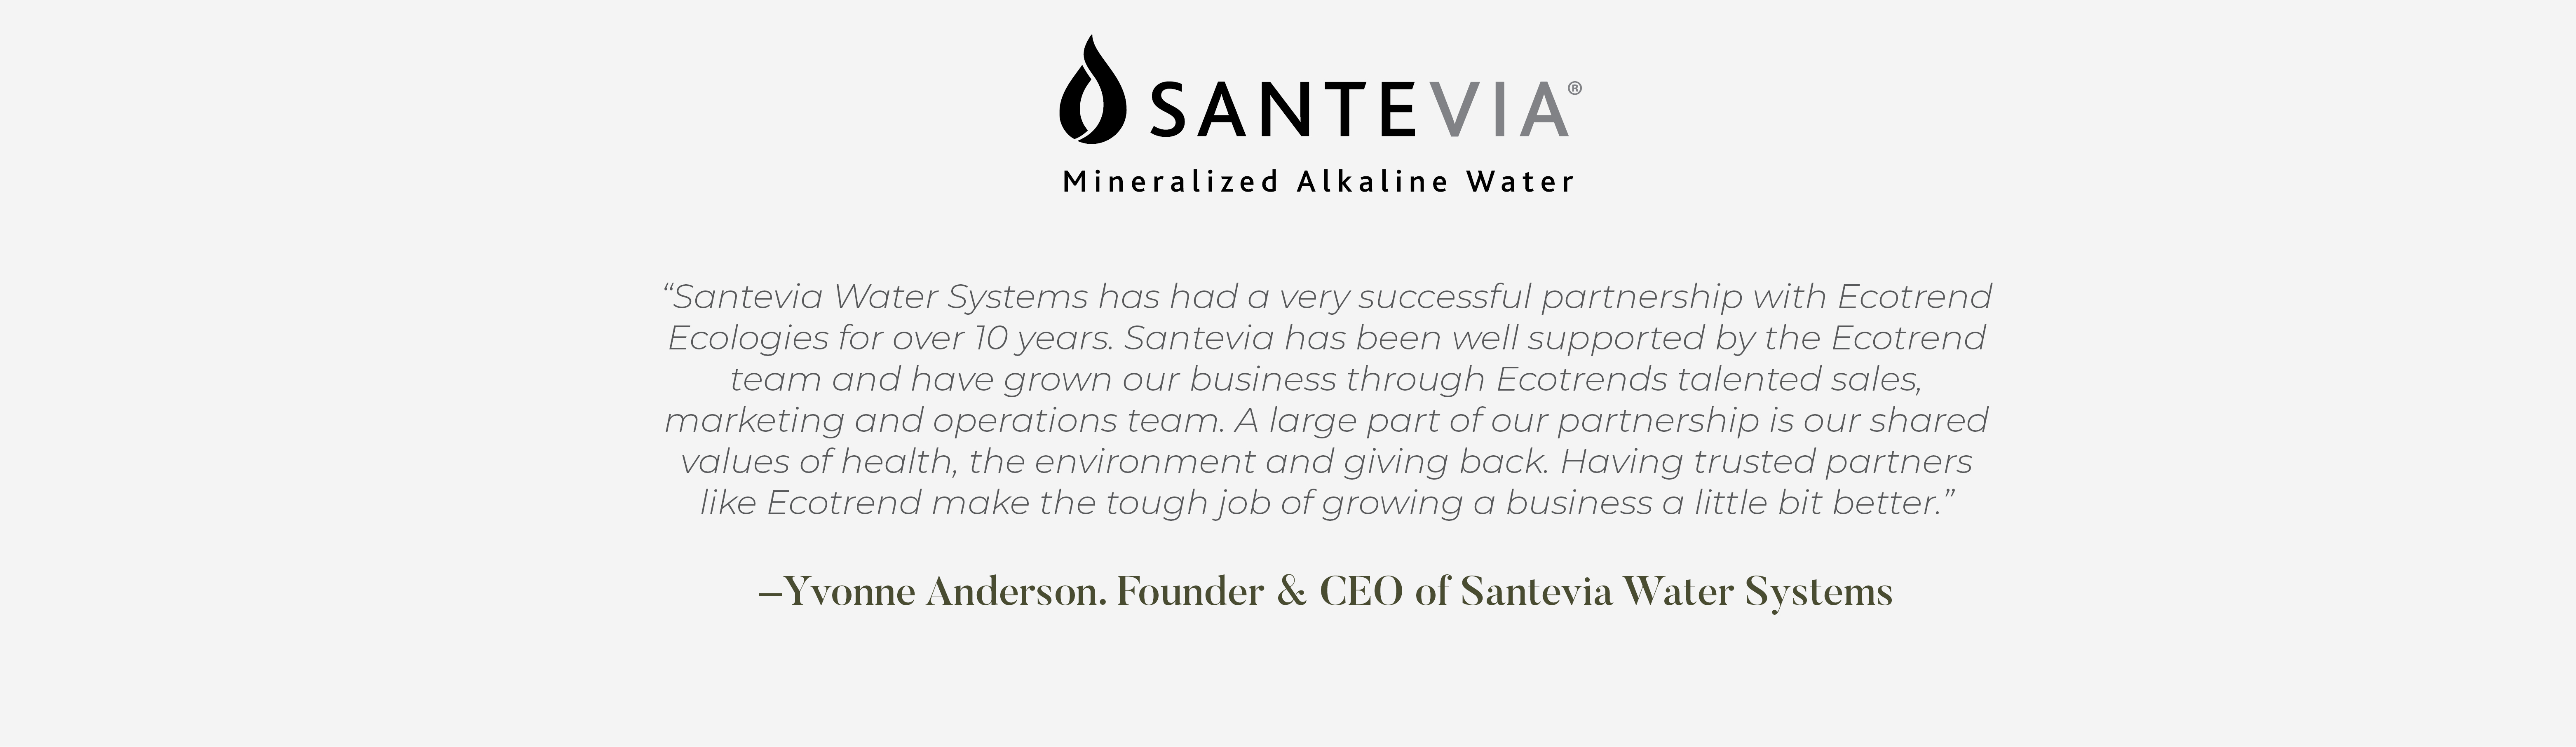 Yvonne Anderson Founder and CEO of Santevia Water Systems testimonial